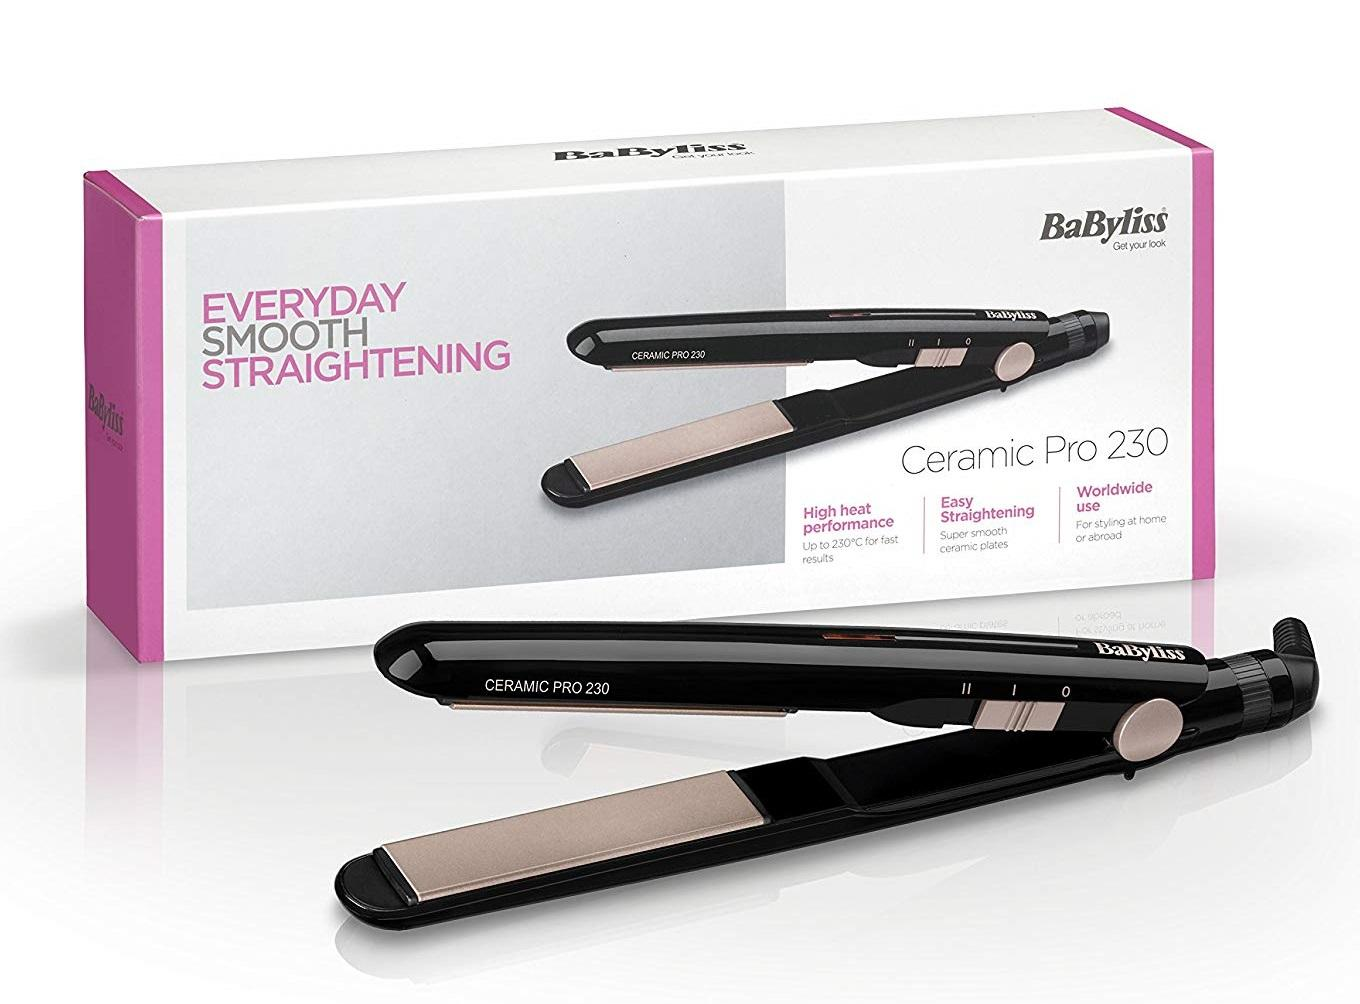 Babyliss 2069u Pro Ceramic 230 Hair Straightener With Fizz-Free Salon Straight Style[1 Year Local Guarantee] By Sg Shopping Mall.